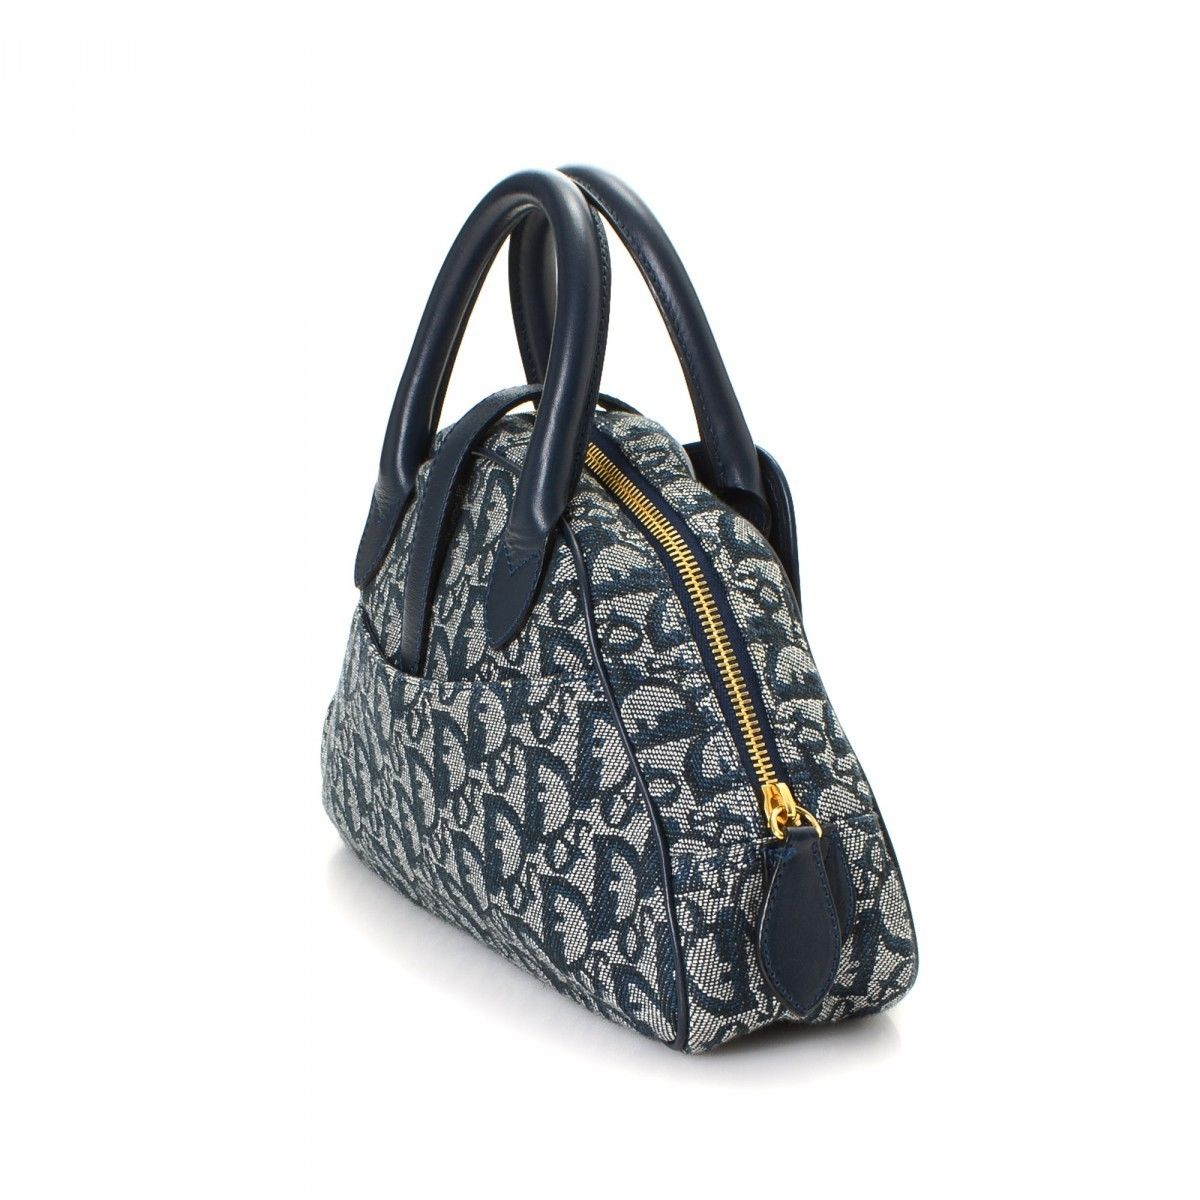 9c2bf0d44 Dior Mini Saddle Bag Trotter Canvas - LXRandCo - Pre-Owned Luxury ...